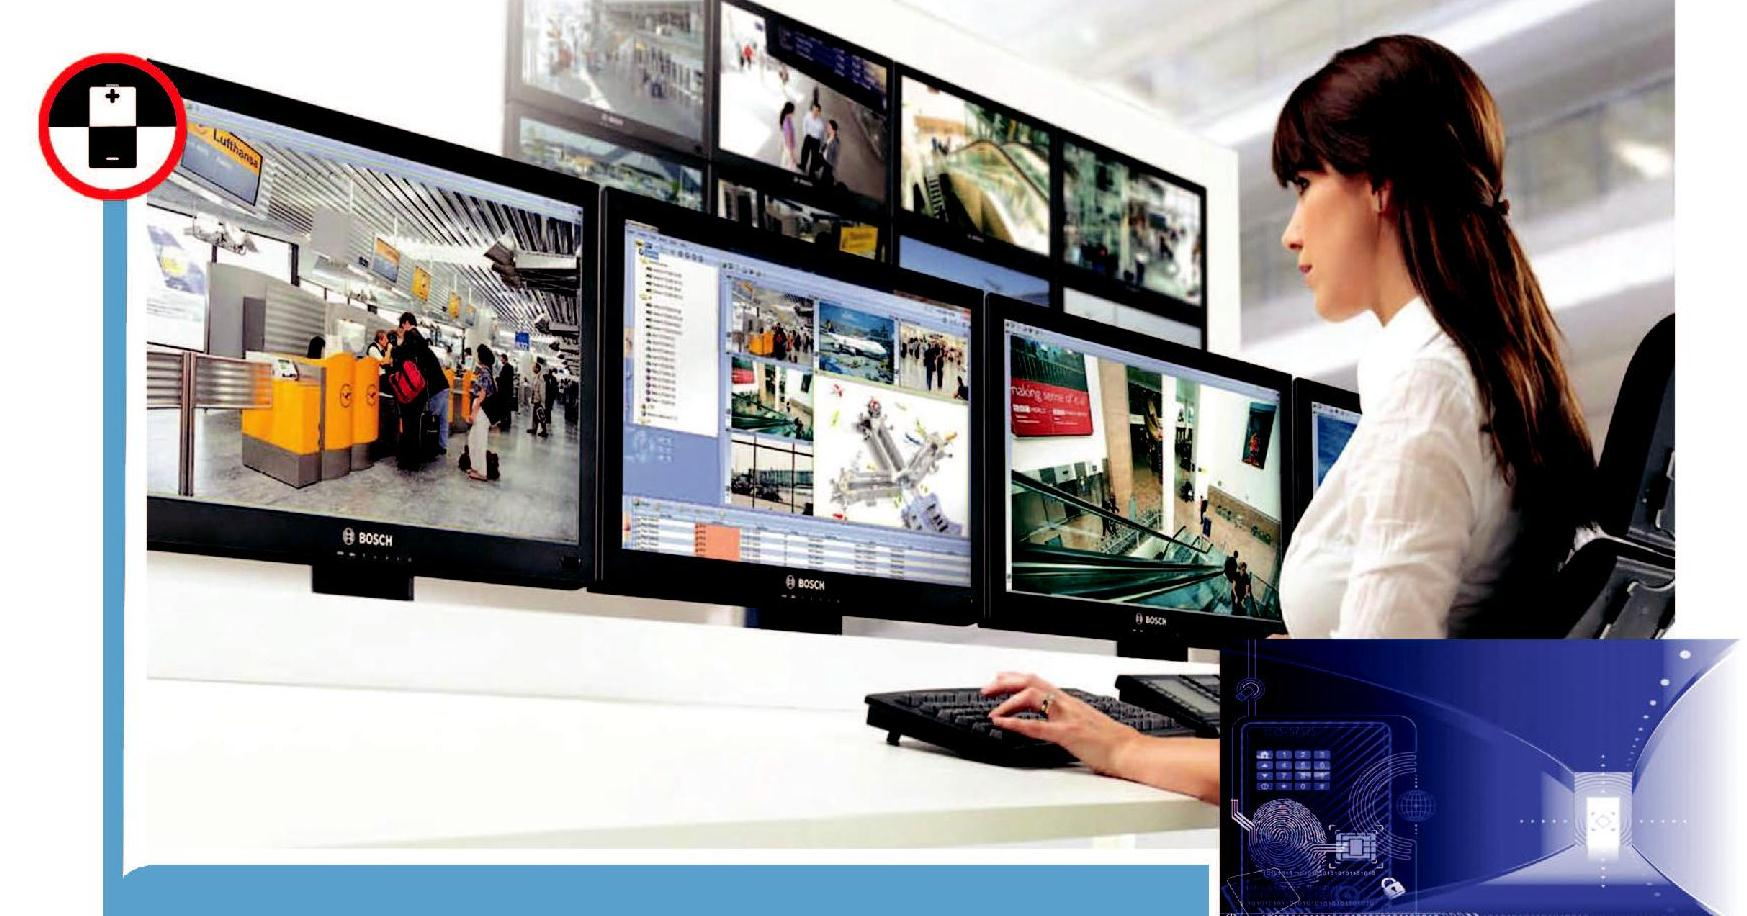 Security Surveillance and Access Control Supervisor :The individual at work is responsible for supervising technicians engaged in installTion and maintenance of CCTV, access control system at the customer's premises. The individual undertakes customer car